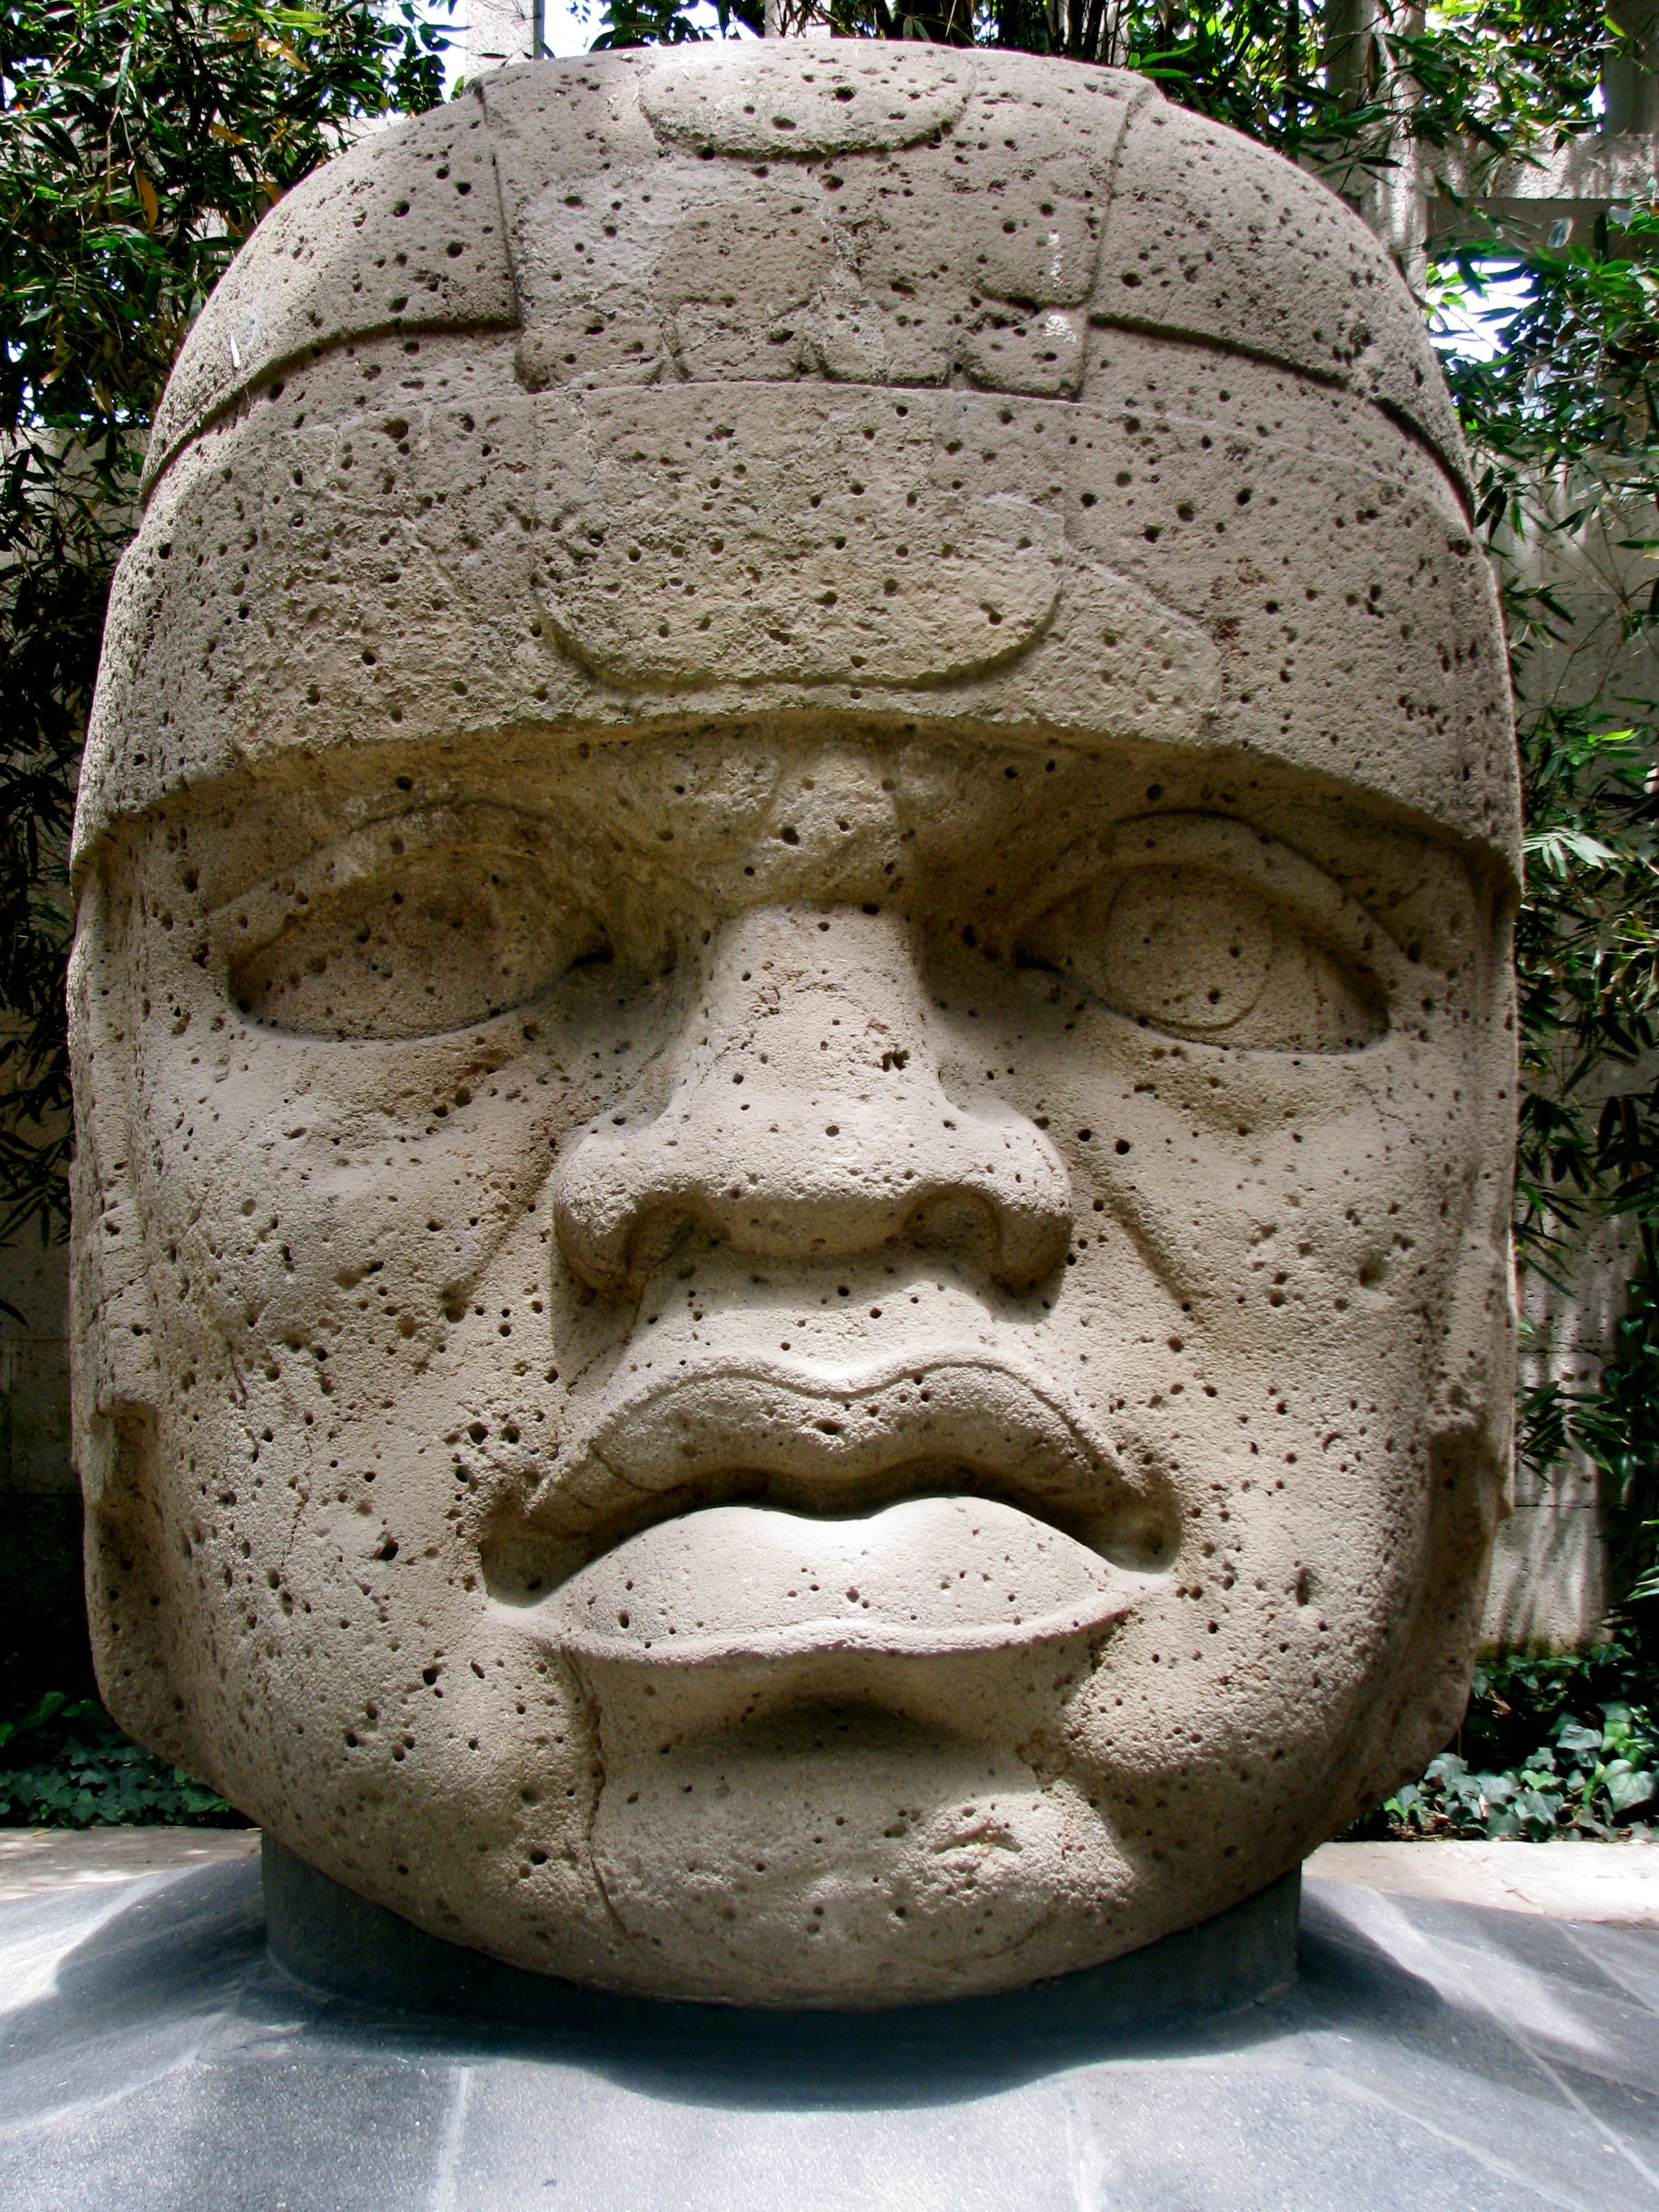 2 these giant head sculptures were created by the ancient olmec 2 these giant head sculptures were created by the ancient olmec civilization the olmecs where the first cultivators of cocoa over four thousand years ago publicscrutiny Images